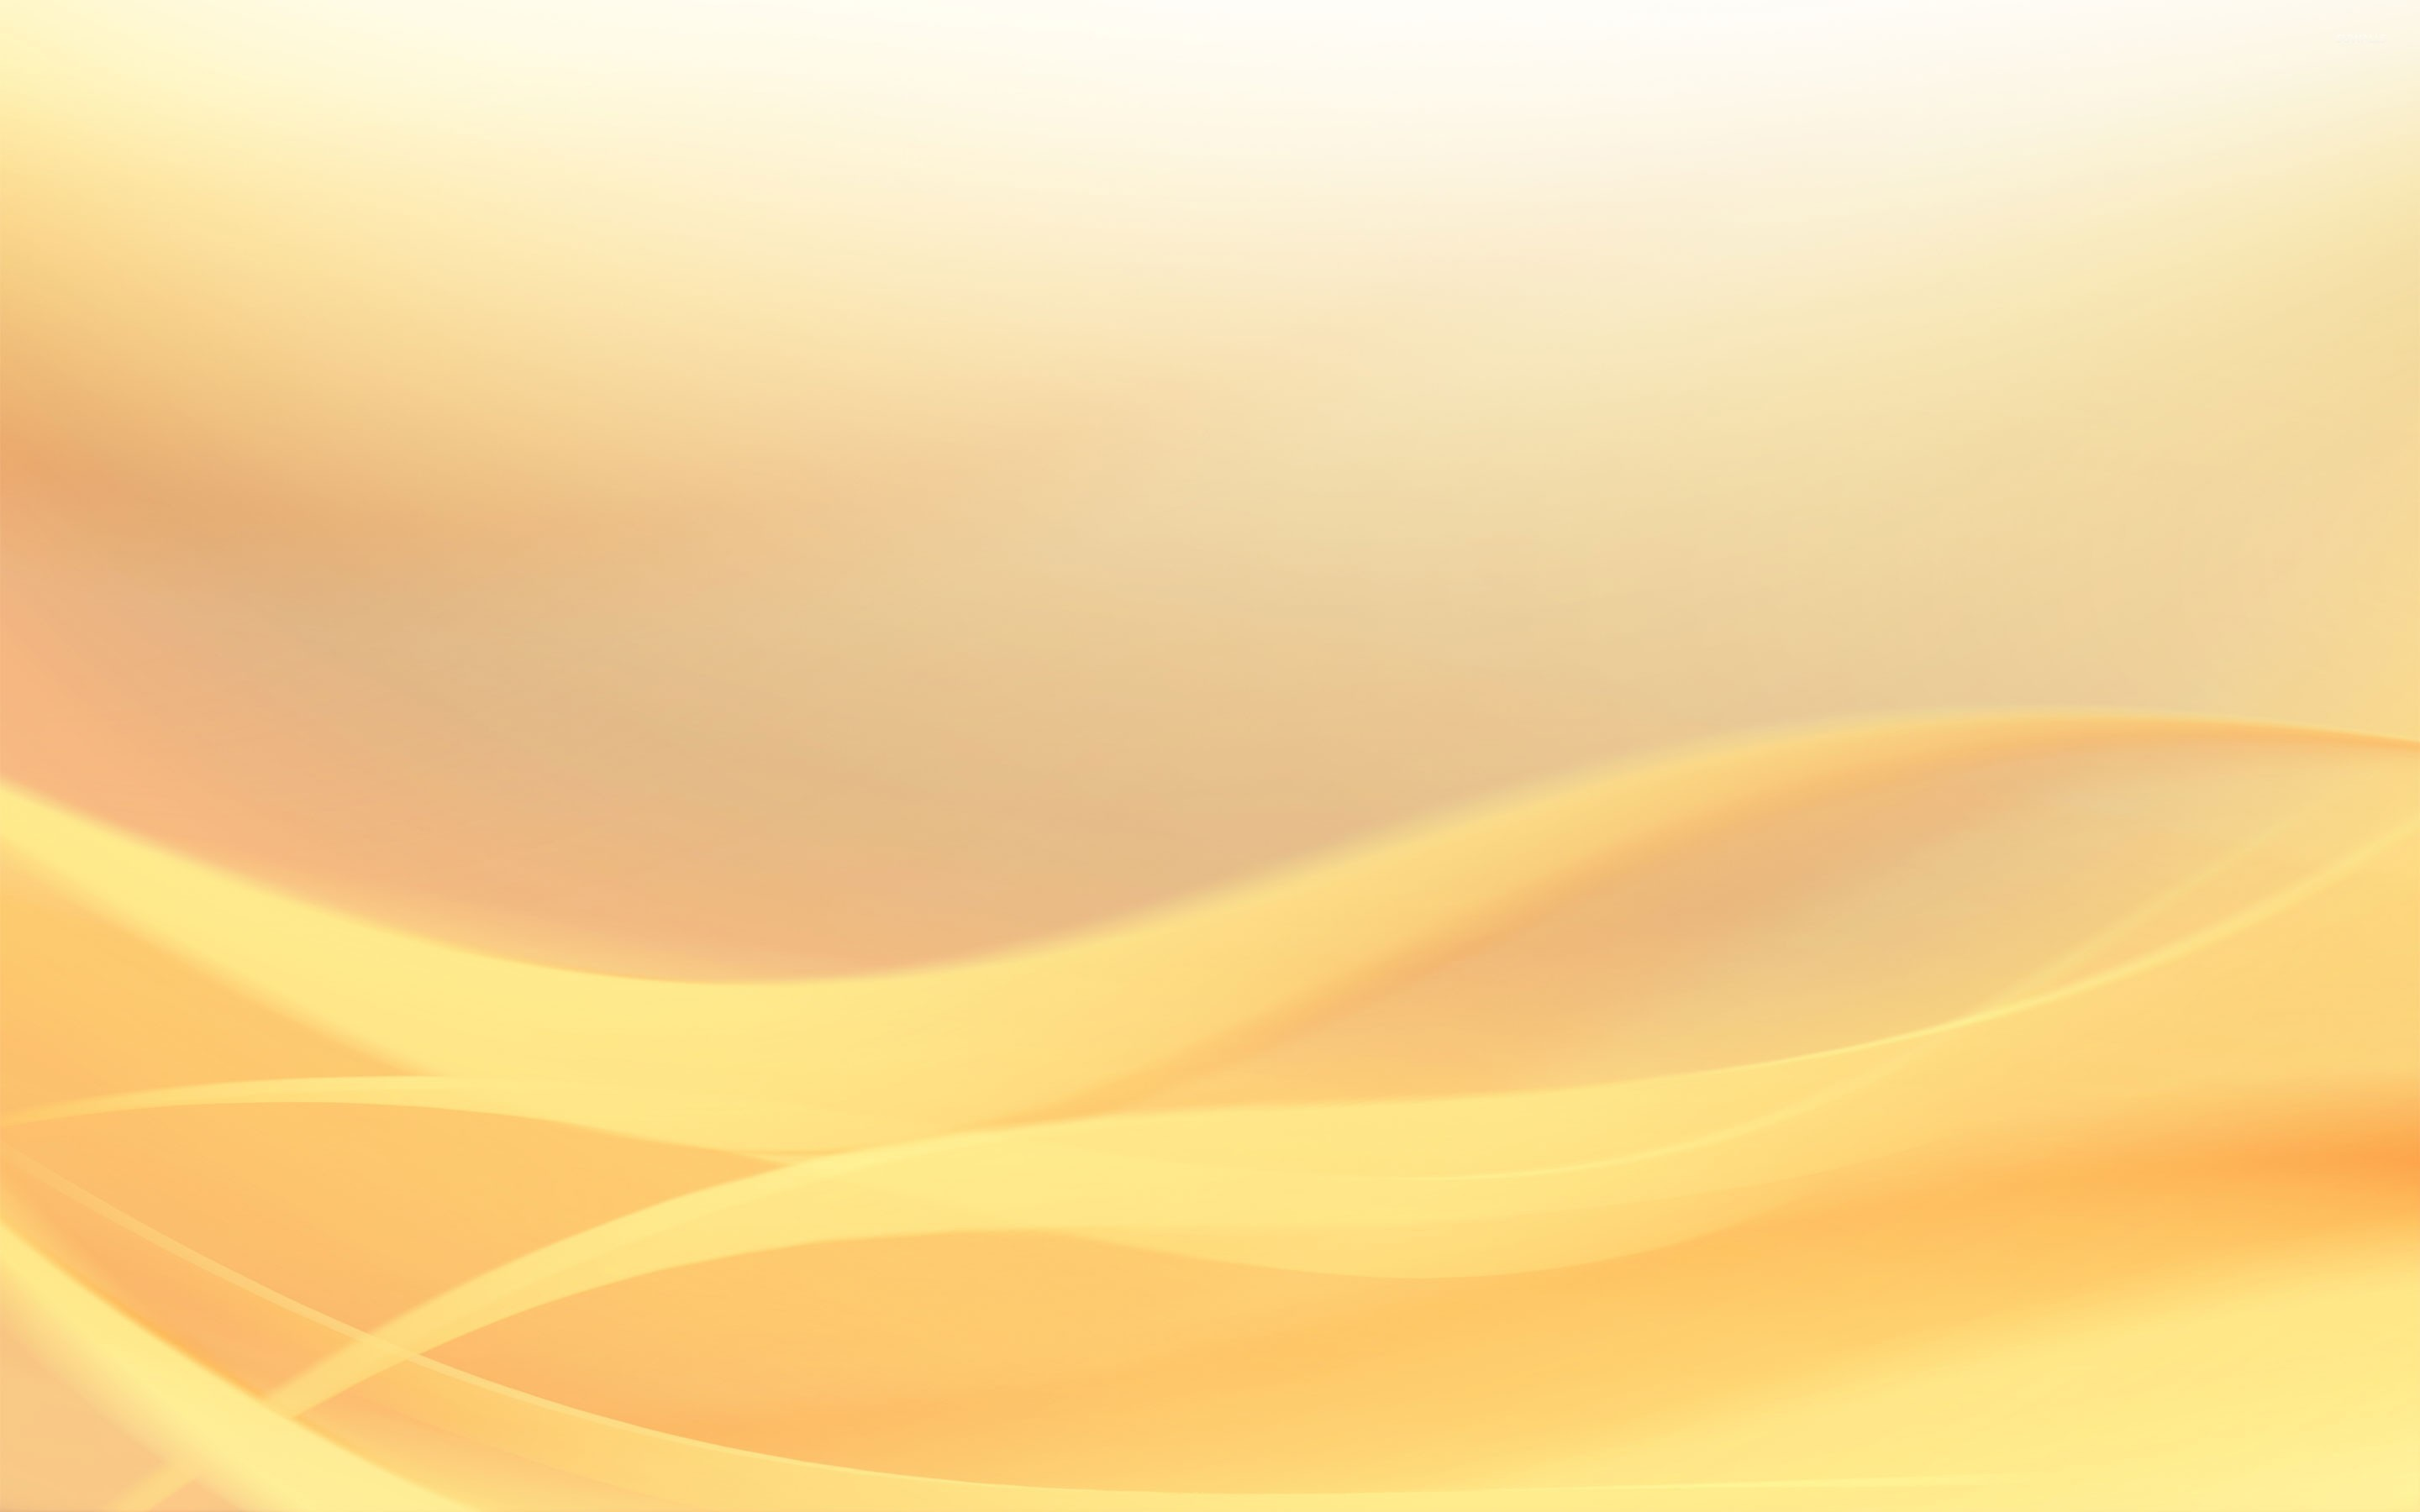 Yellow waves wallpaper - Abstract wallpapers - #23845